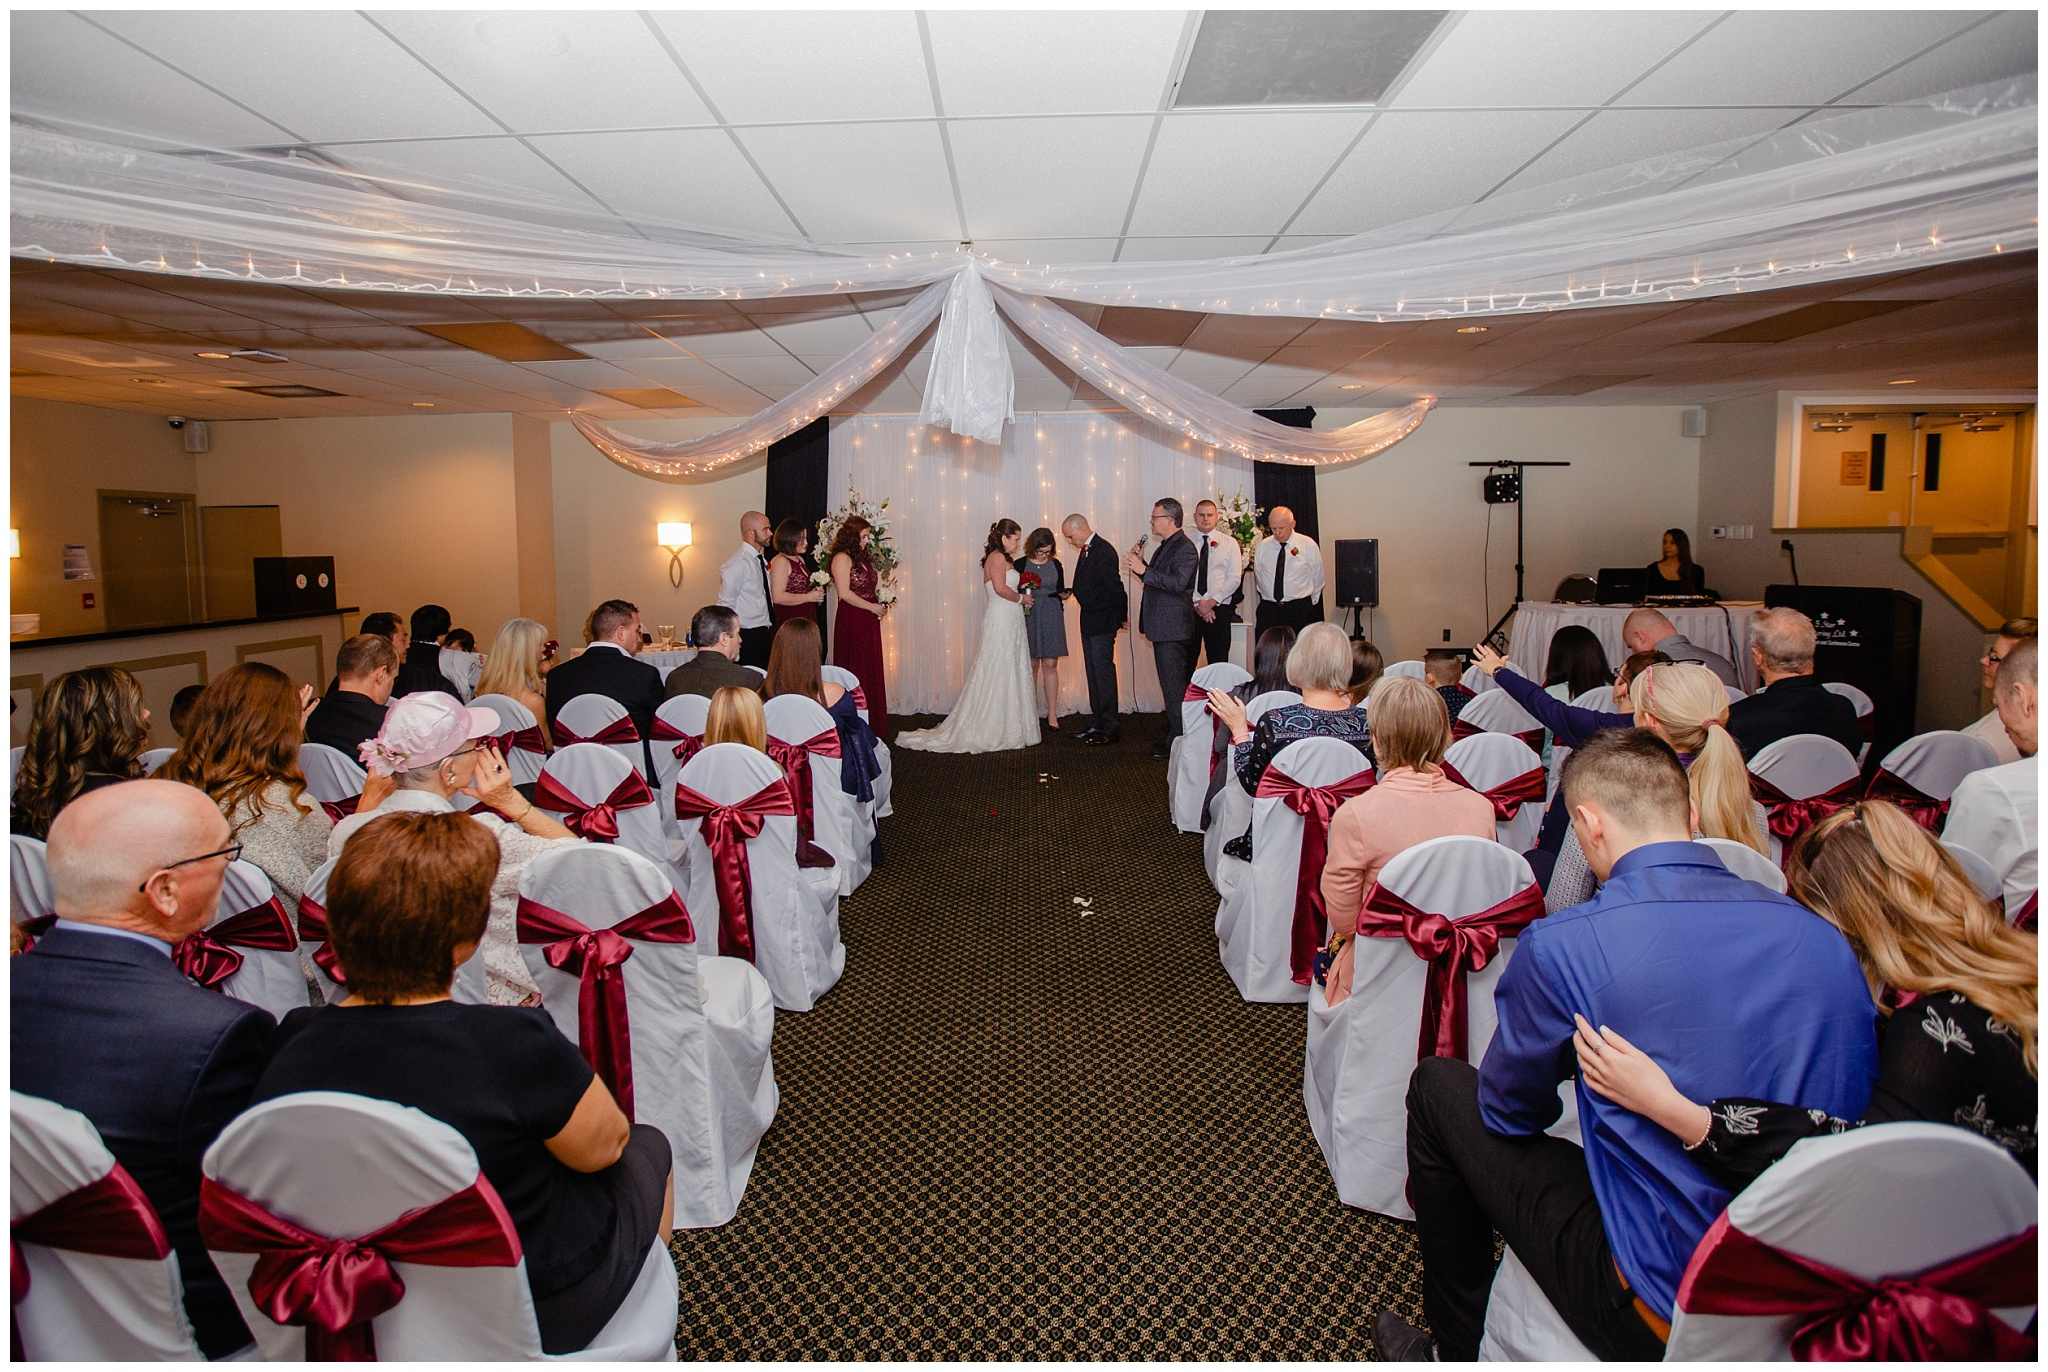 White Rock Intimate Wedding 5 Star Catering Venue Surrey BC Middle Aged Couple_0023.jpg